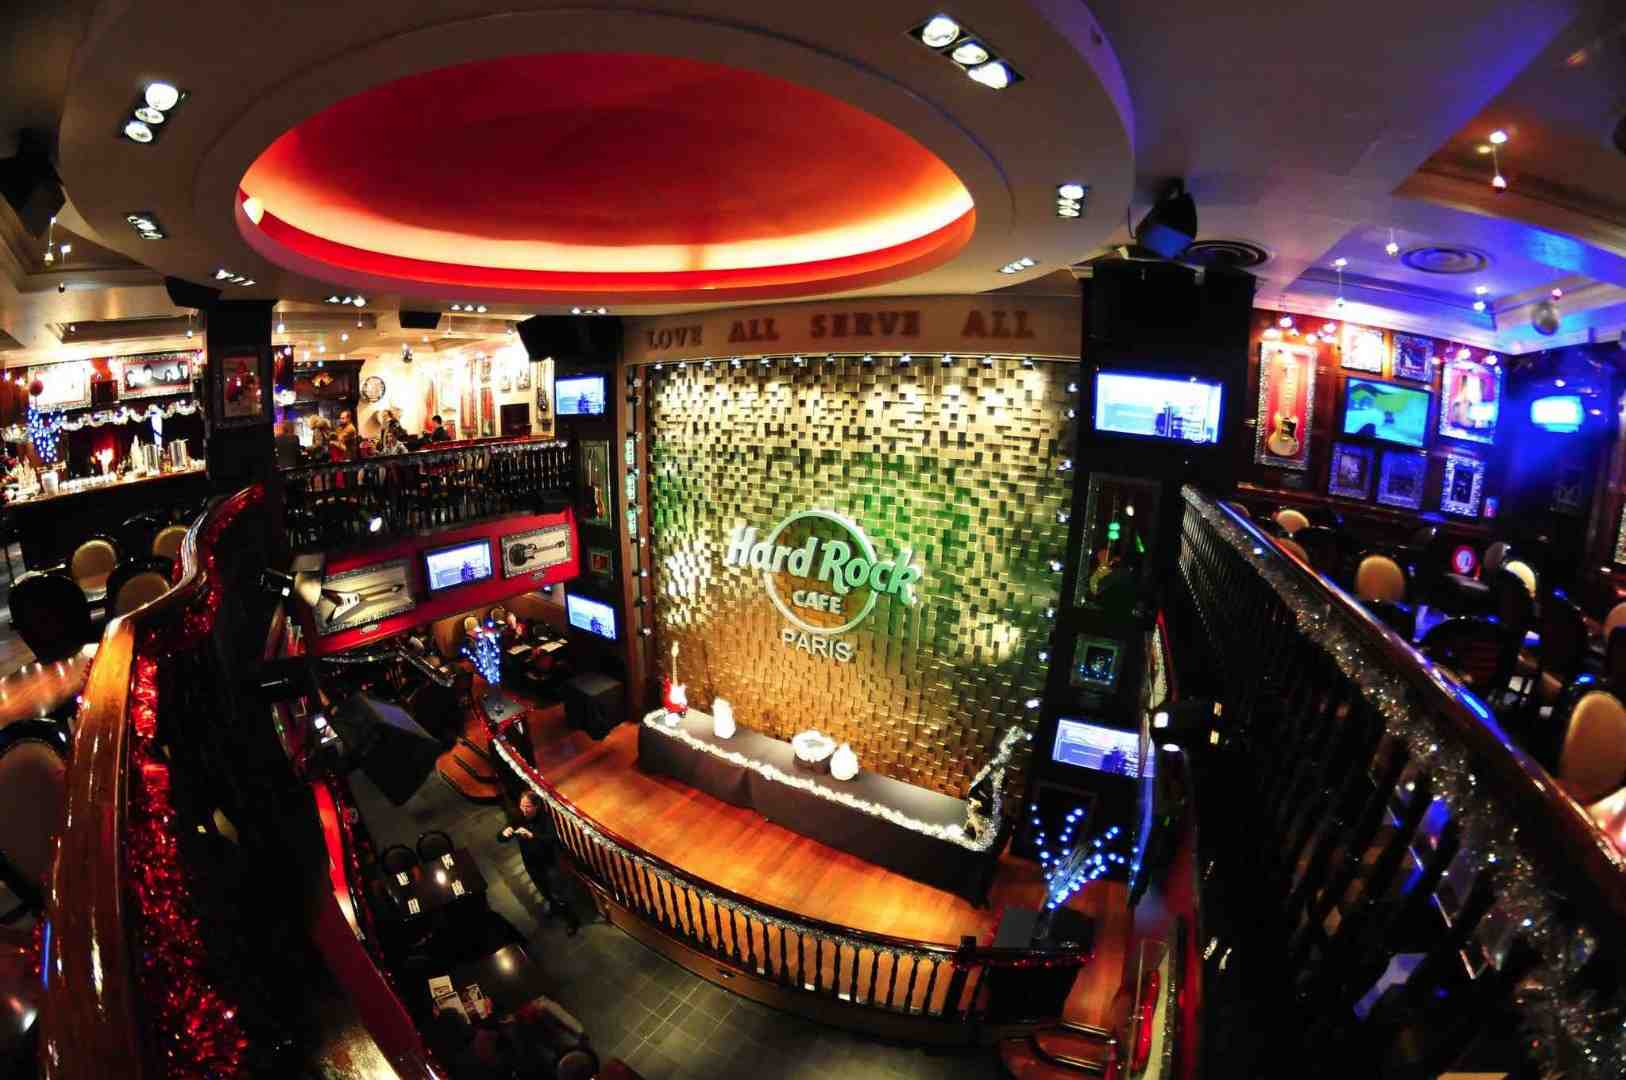 Hard Rock Caf Ef Bf Bd Chatelet